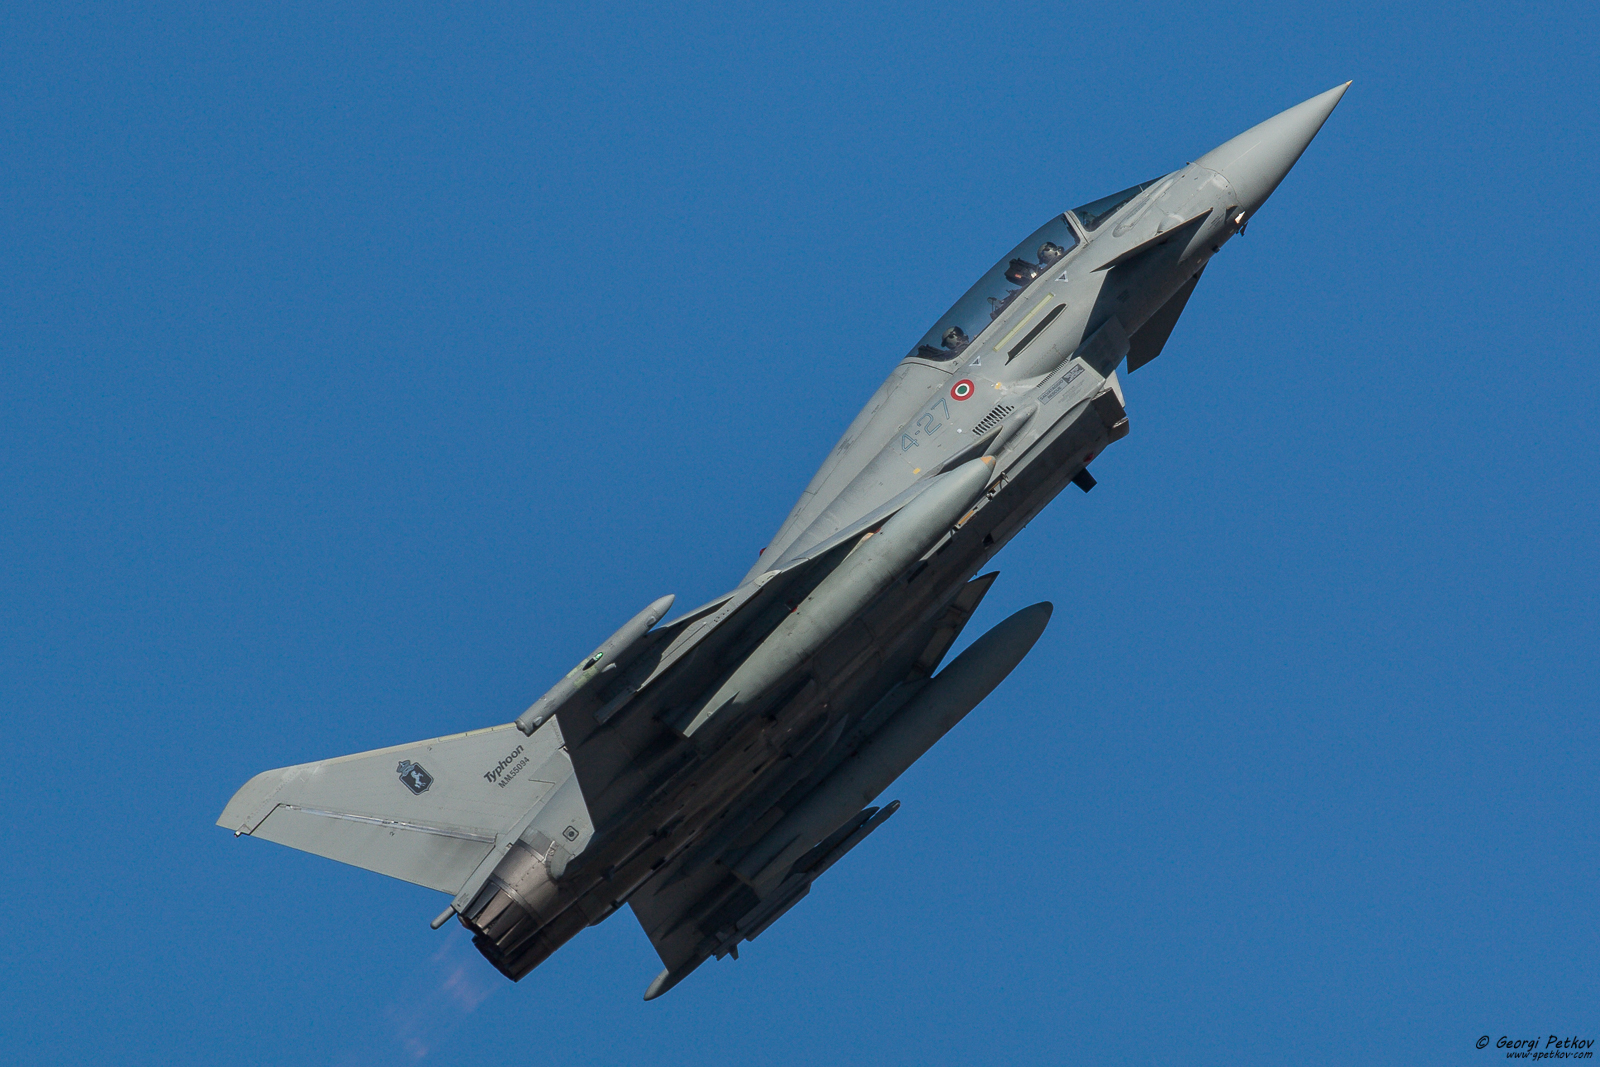 Eurofighter Typhoon presentation in Bulgaria